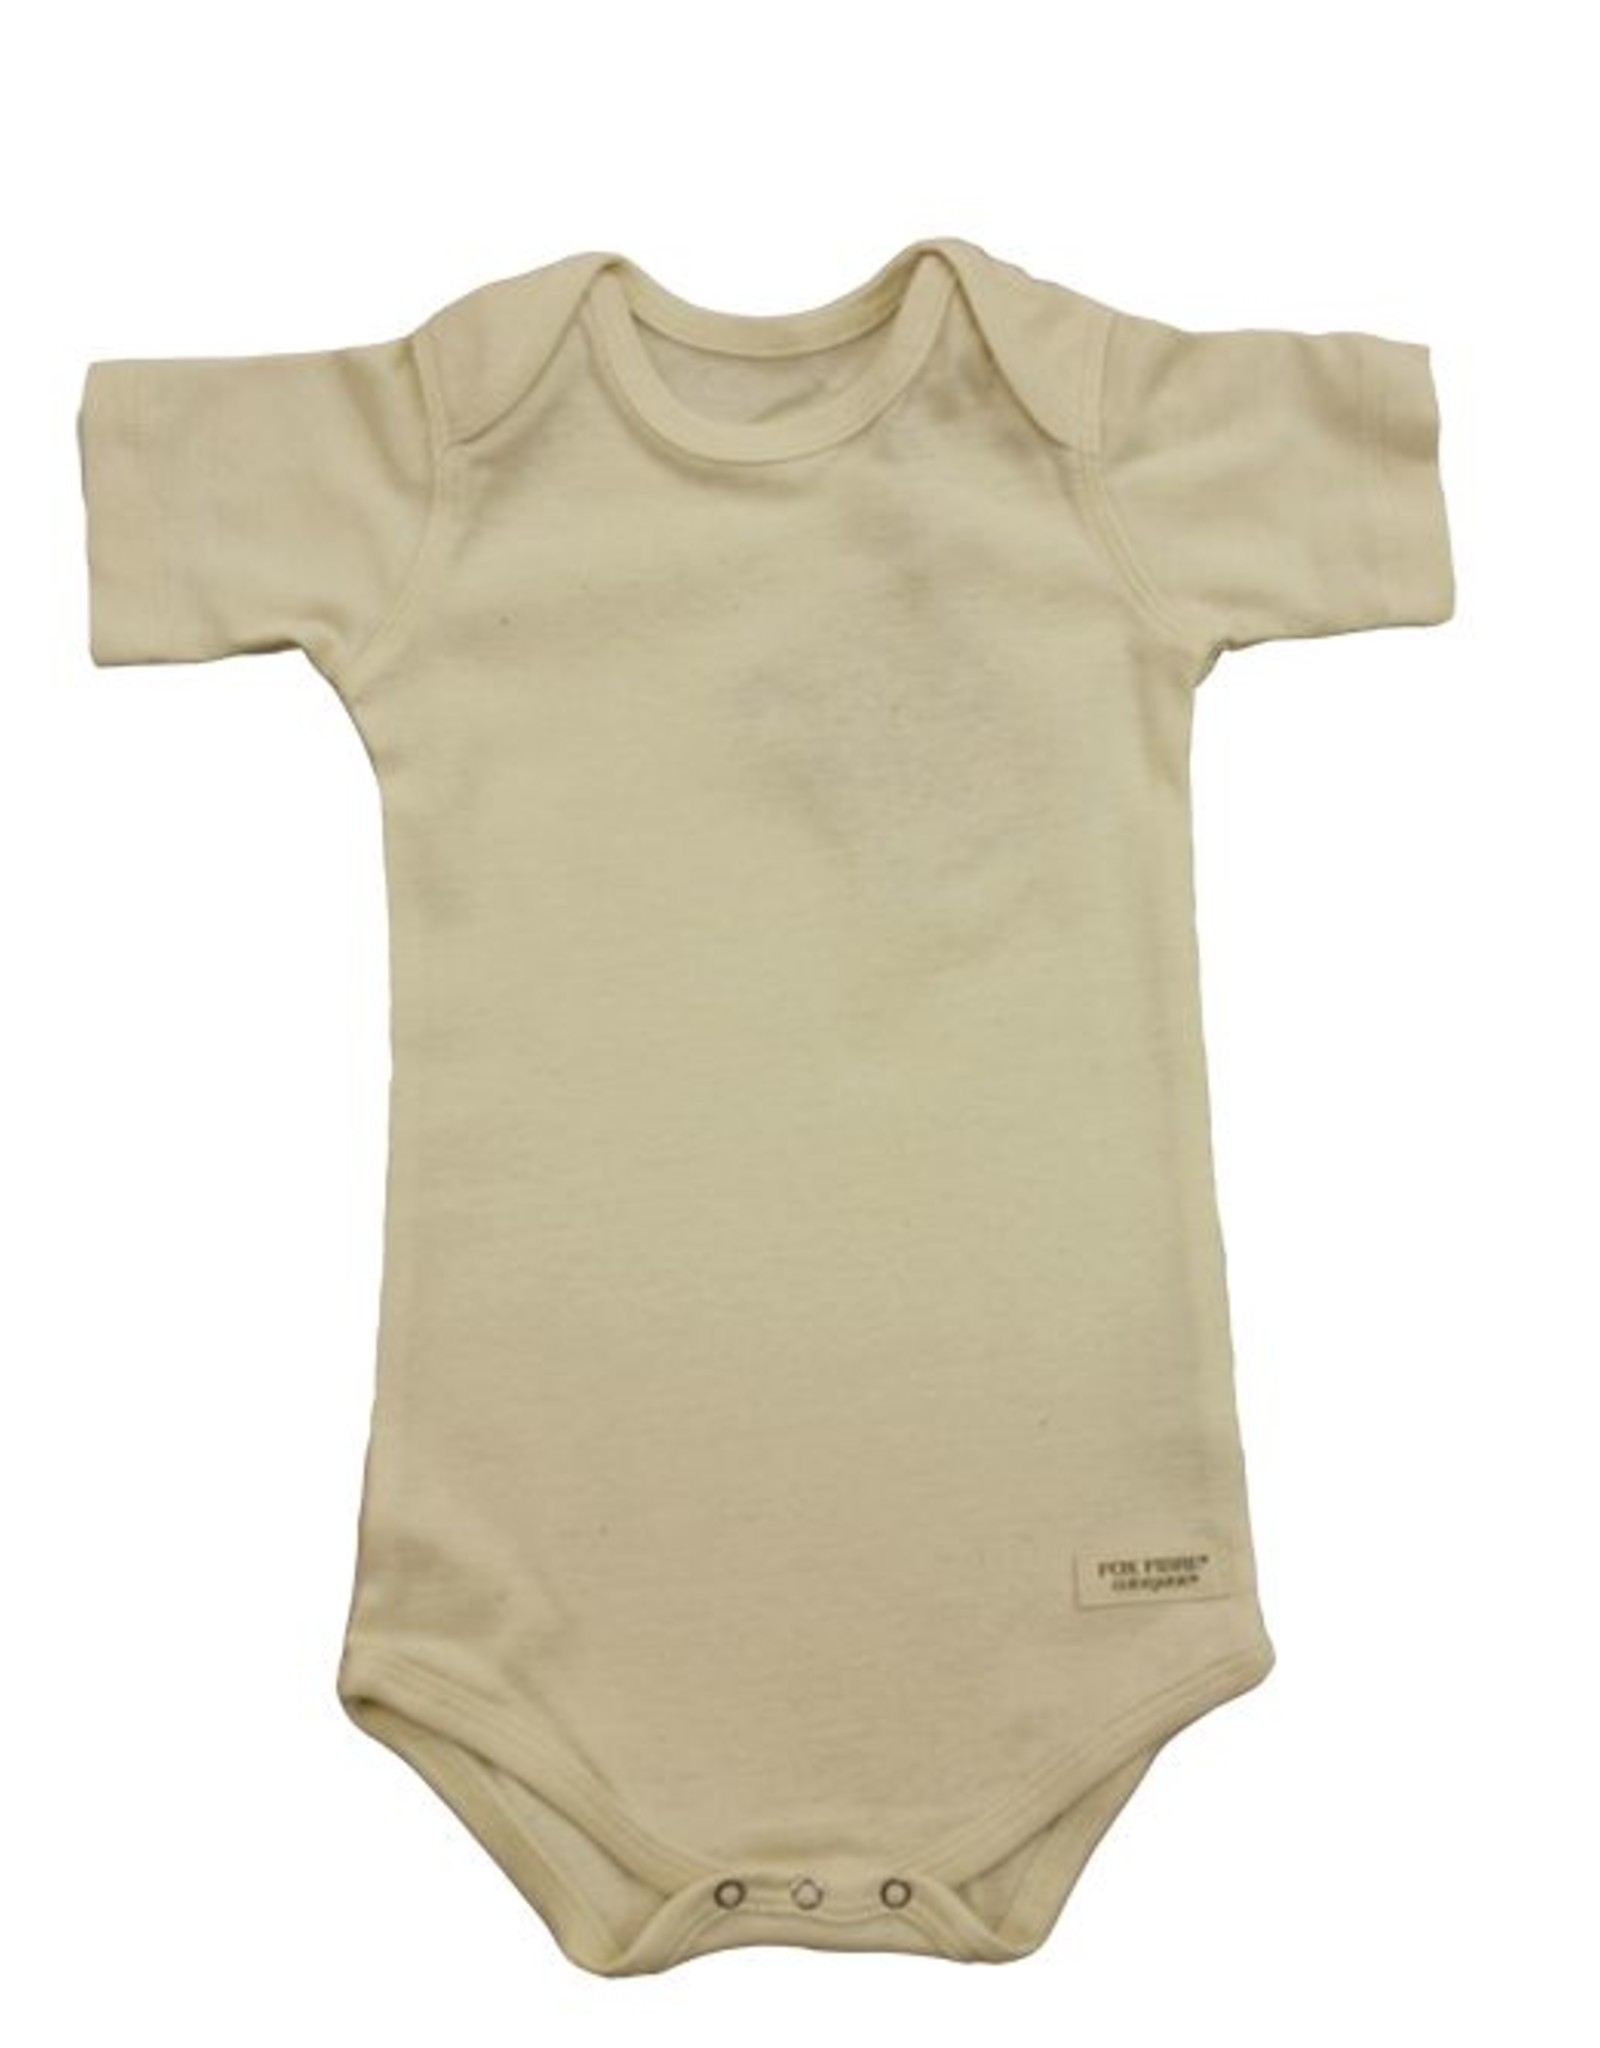 Baby body short sleeve baby. sizes 12, 18 months.